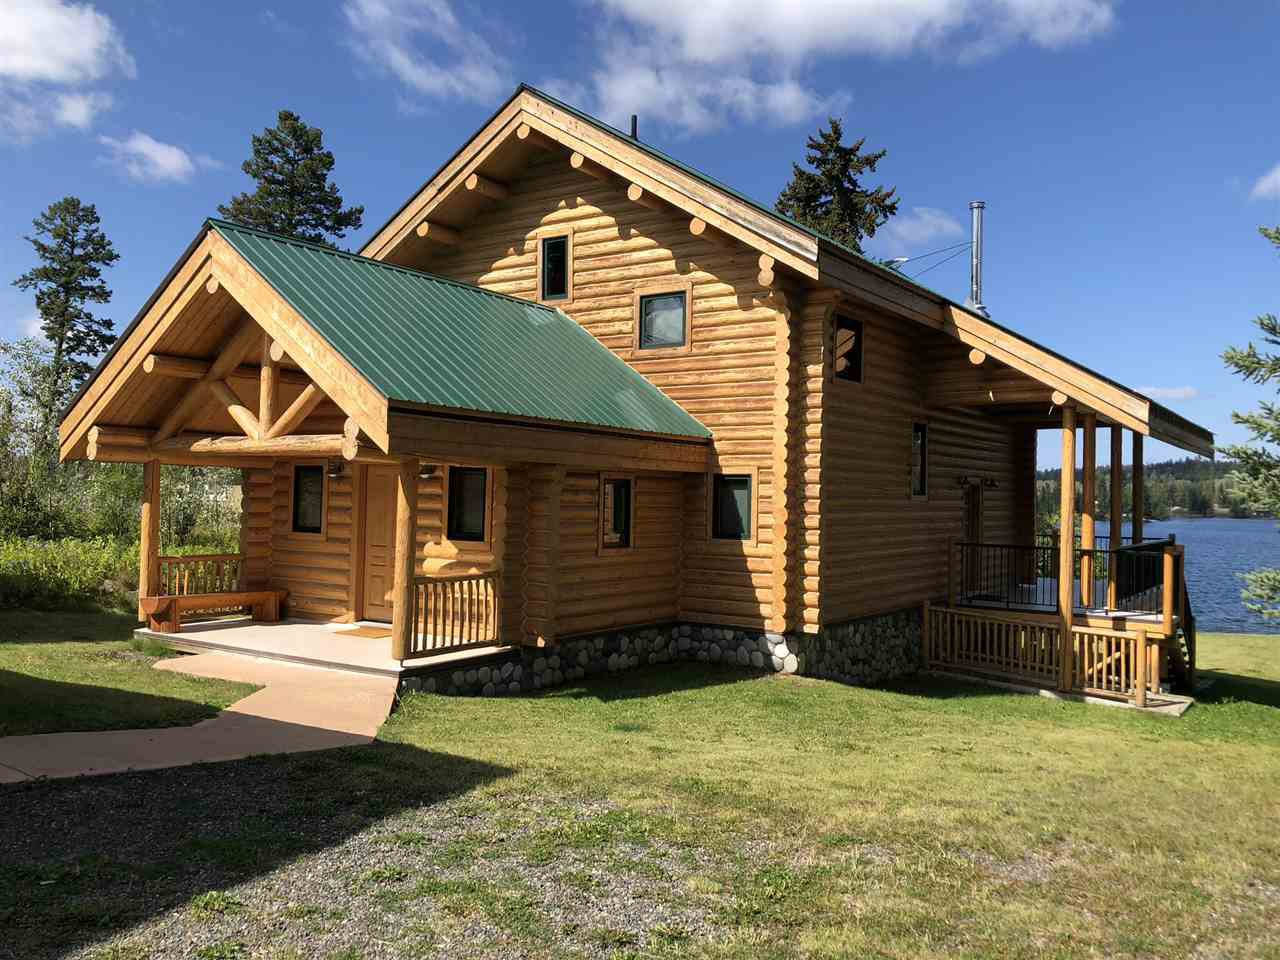 "Main Photo: 7577 BEAZELY Road in Deka Lake / Sulphurous / Hathaway Lakes: Deka/Sulphurous/Hathaway Lakes House for sale in ""DEKA LAKE"" (100 Mile House (Zone 10))  : MLS®# R2384527"